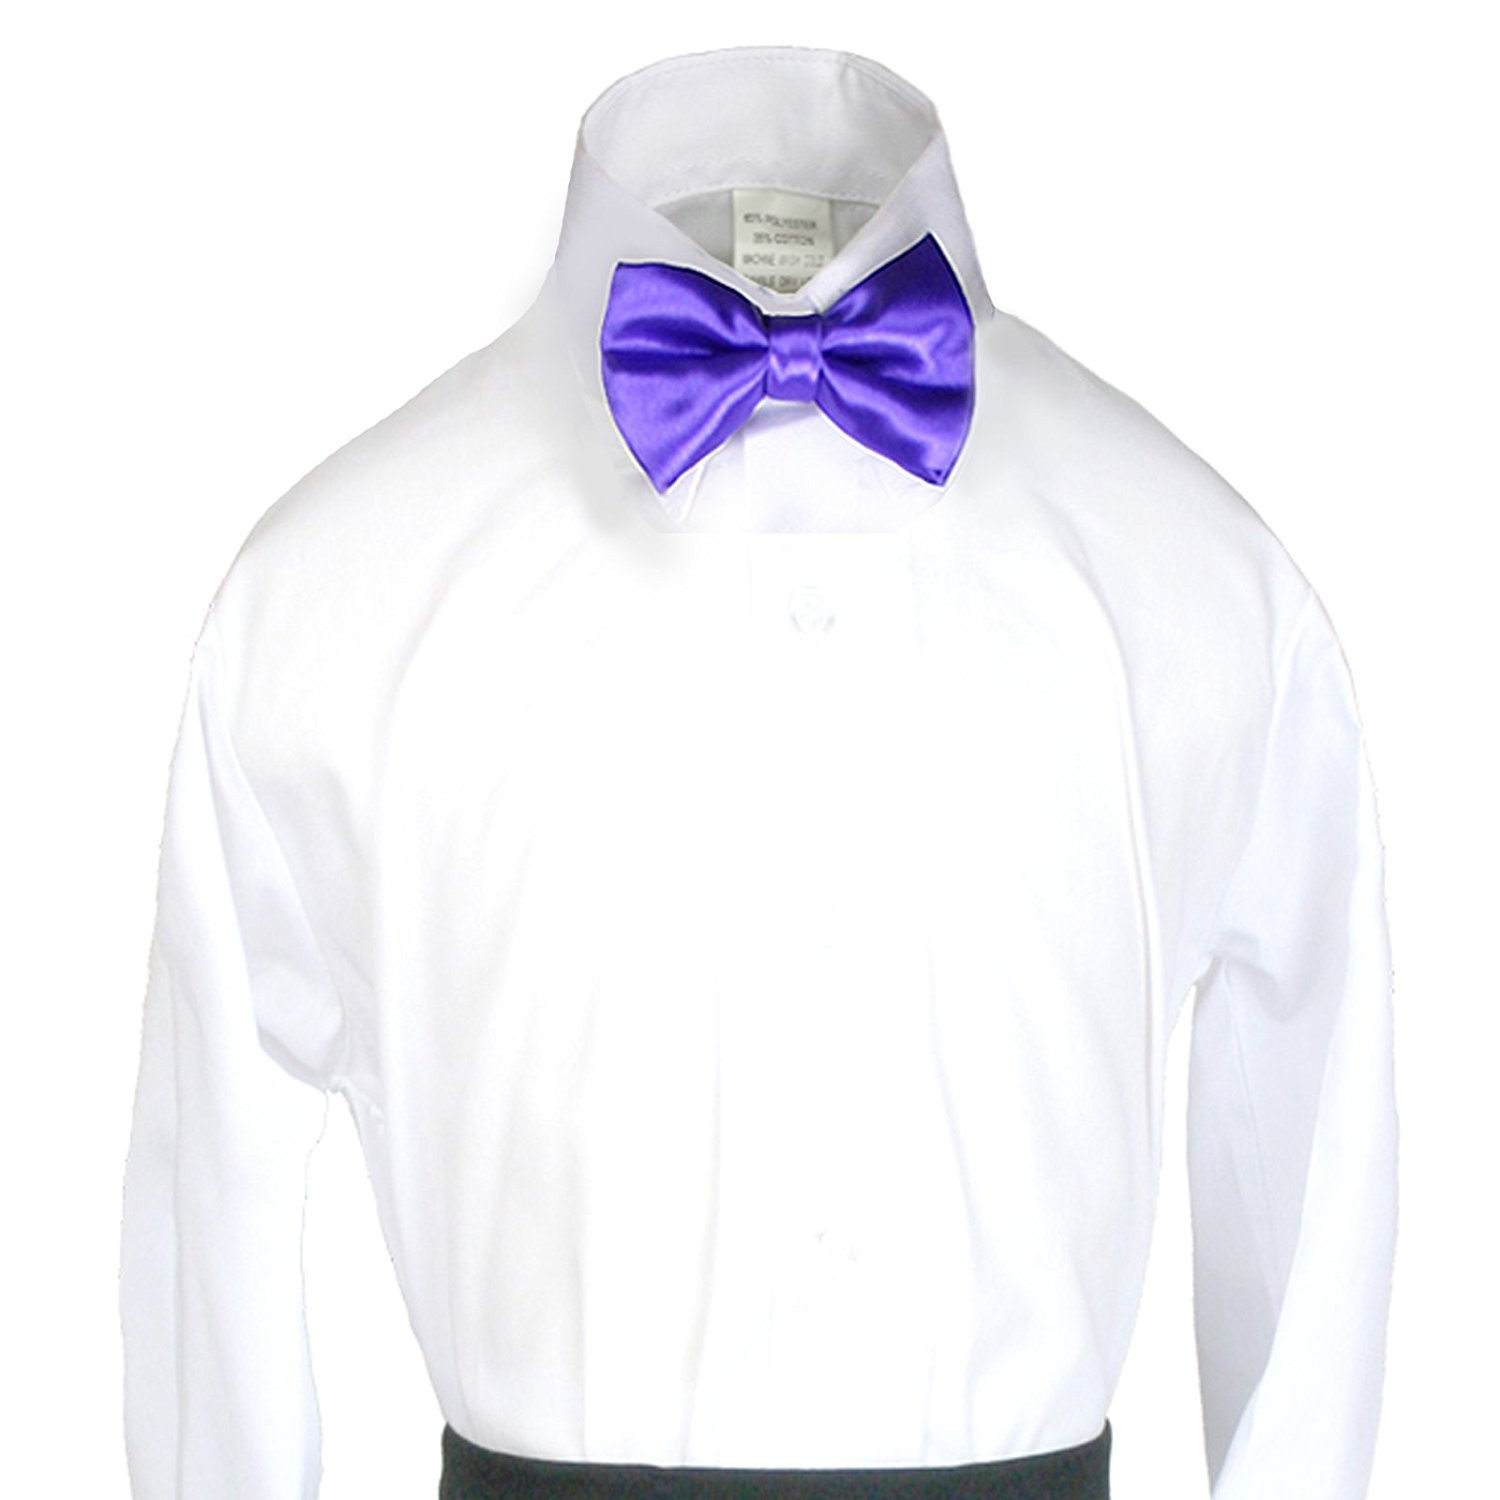 New 2pc Boys Satin Eggplant Vest and Bow tie Sets from Baby to Teen